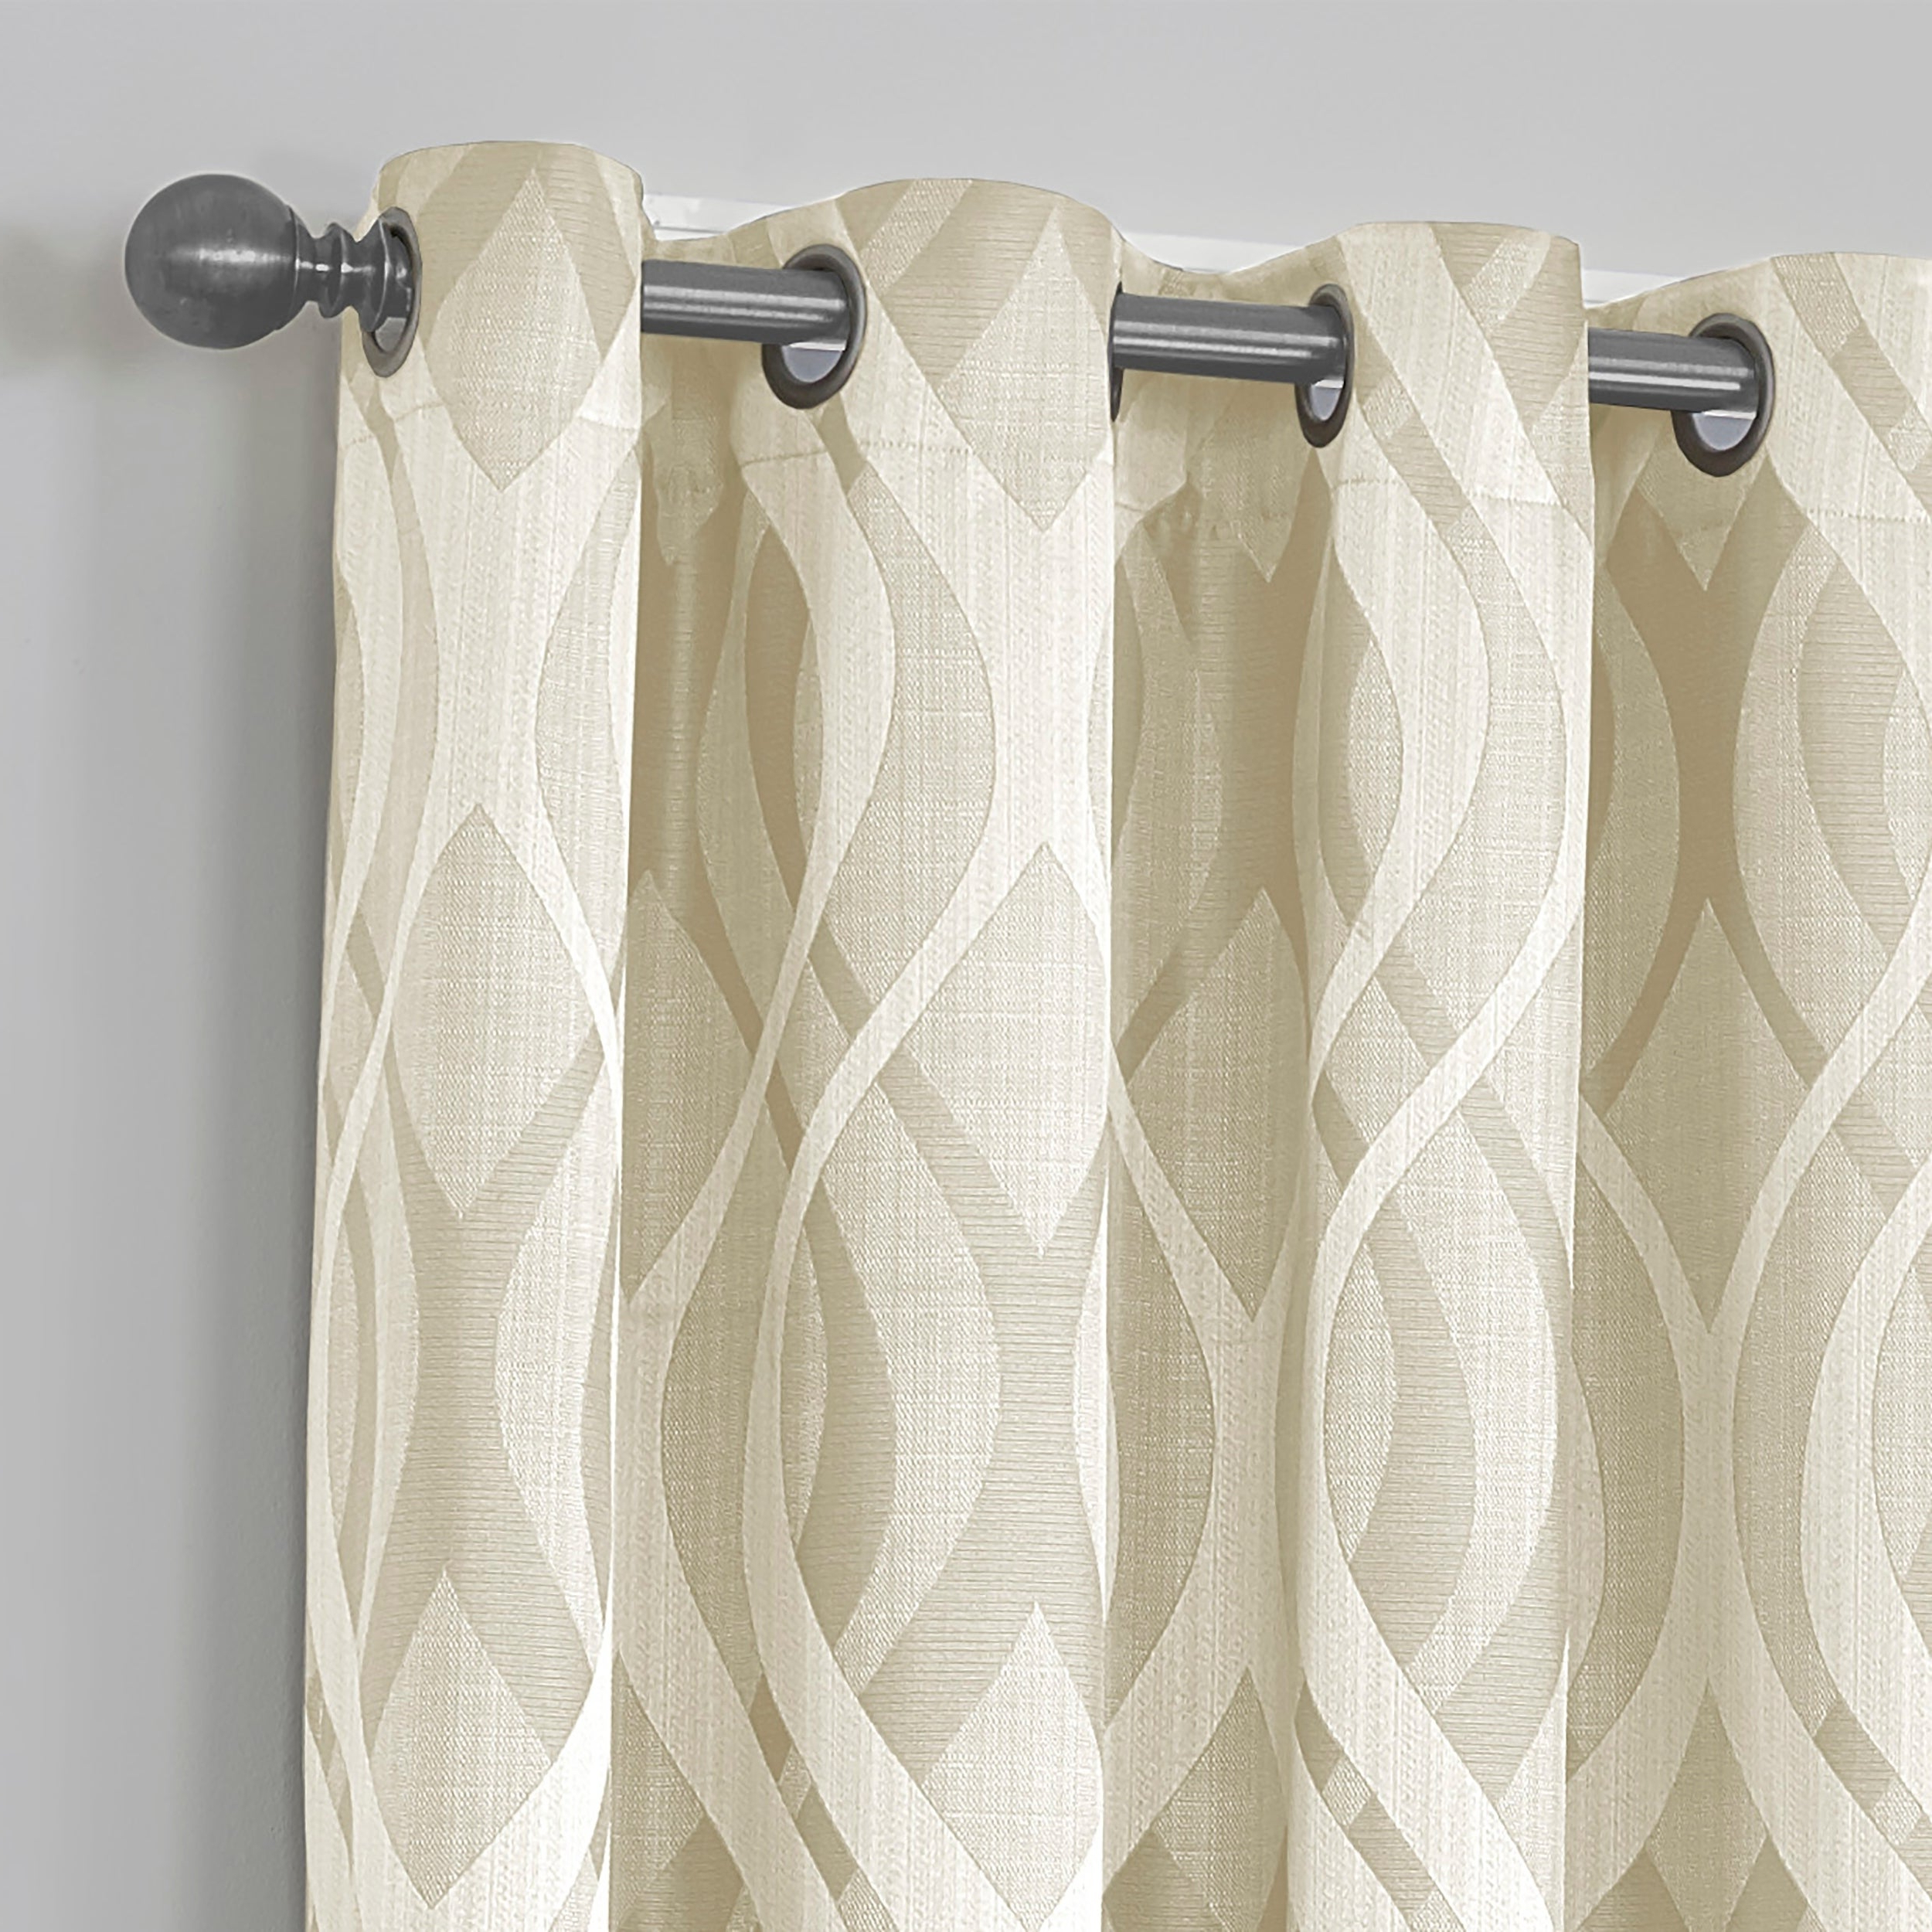 Eclipse Caprese Thermalayer Blackout Window Curtains Throughout Latest Eclipse Caprese Thermalayer Blackout Window Curtain (Gallery 6 of 20)